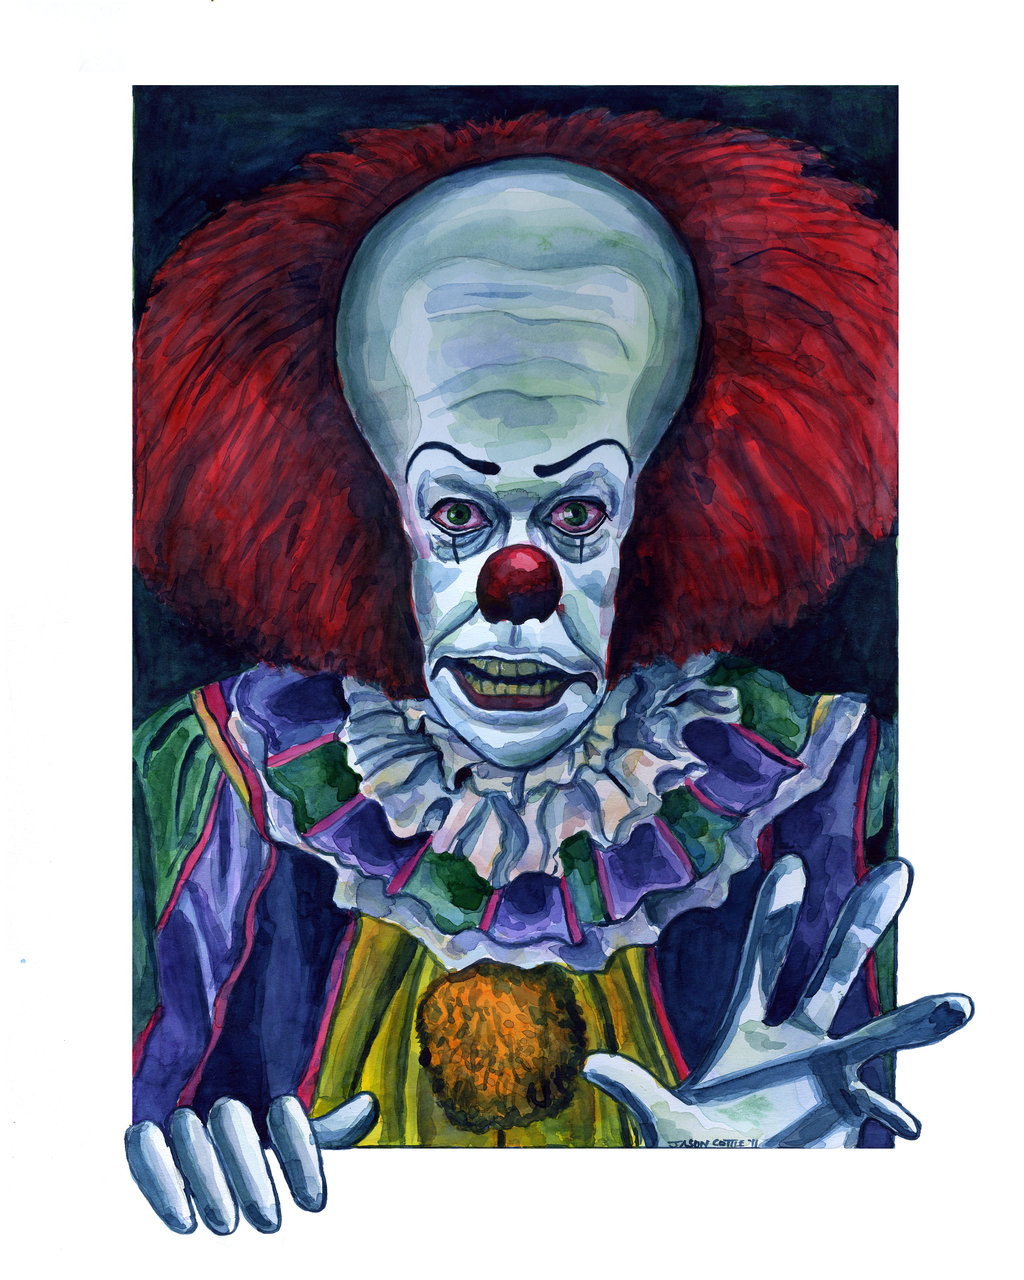 pennywise_from_stephen_king__s_it_by_caricature80-d4j2pkr